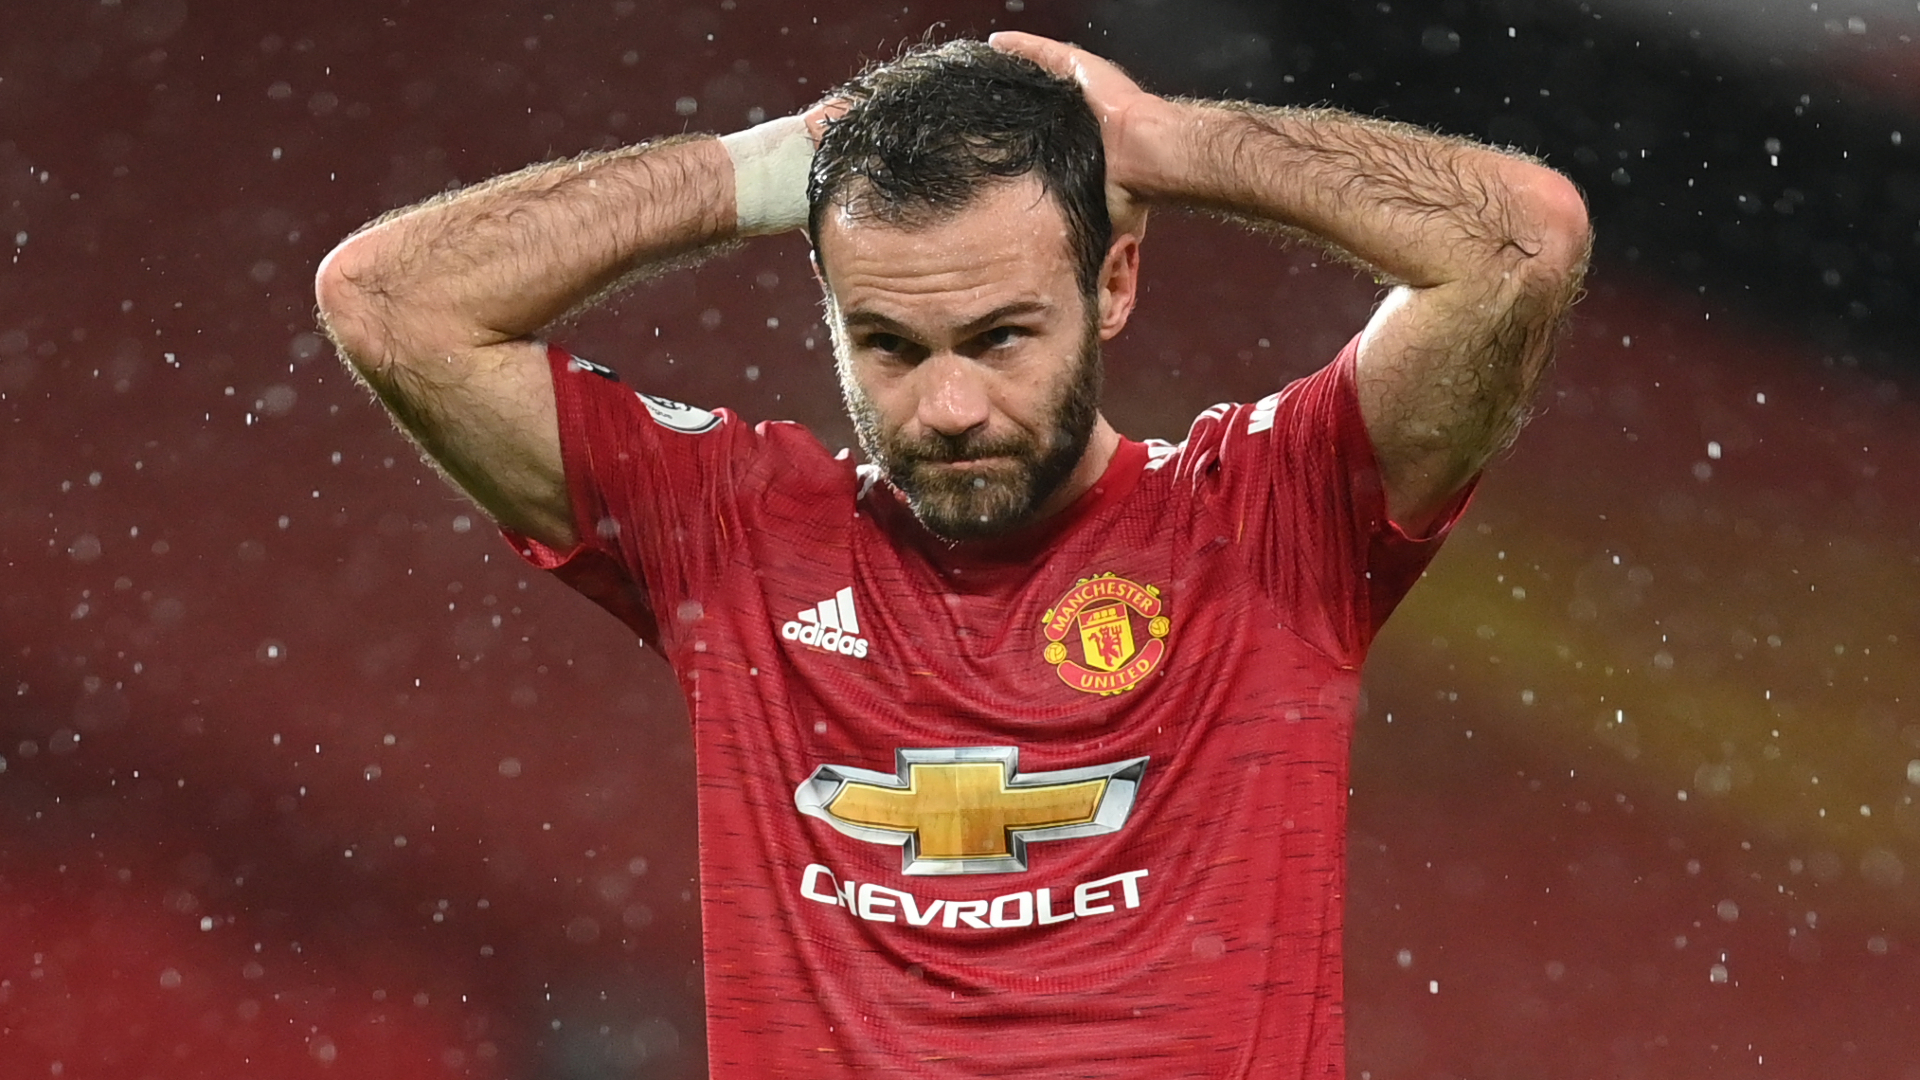 'I hope I have plenty of years left!' - Man Utd star Mata not ready to walk away from 'emotional roulette' of professional football